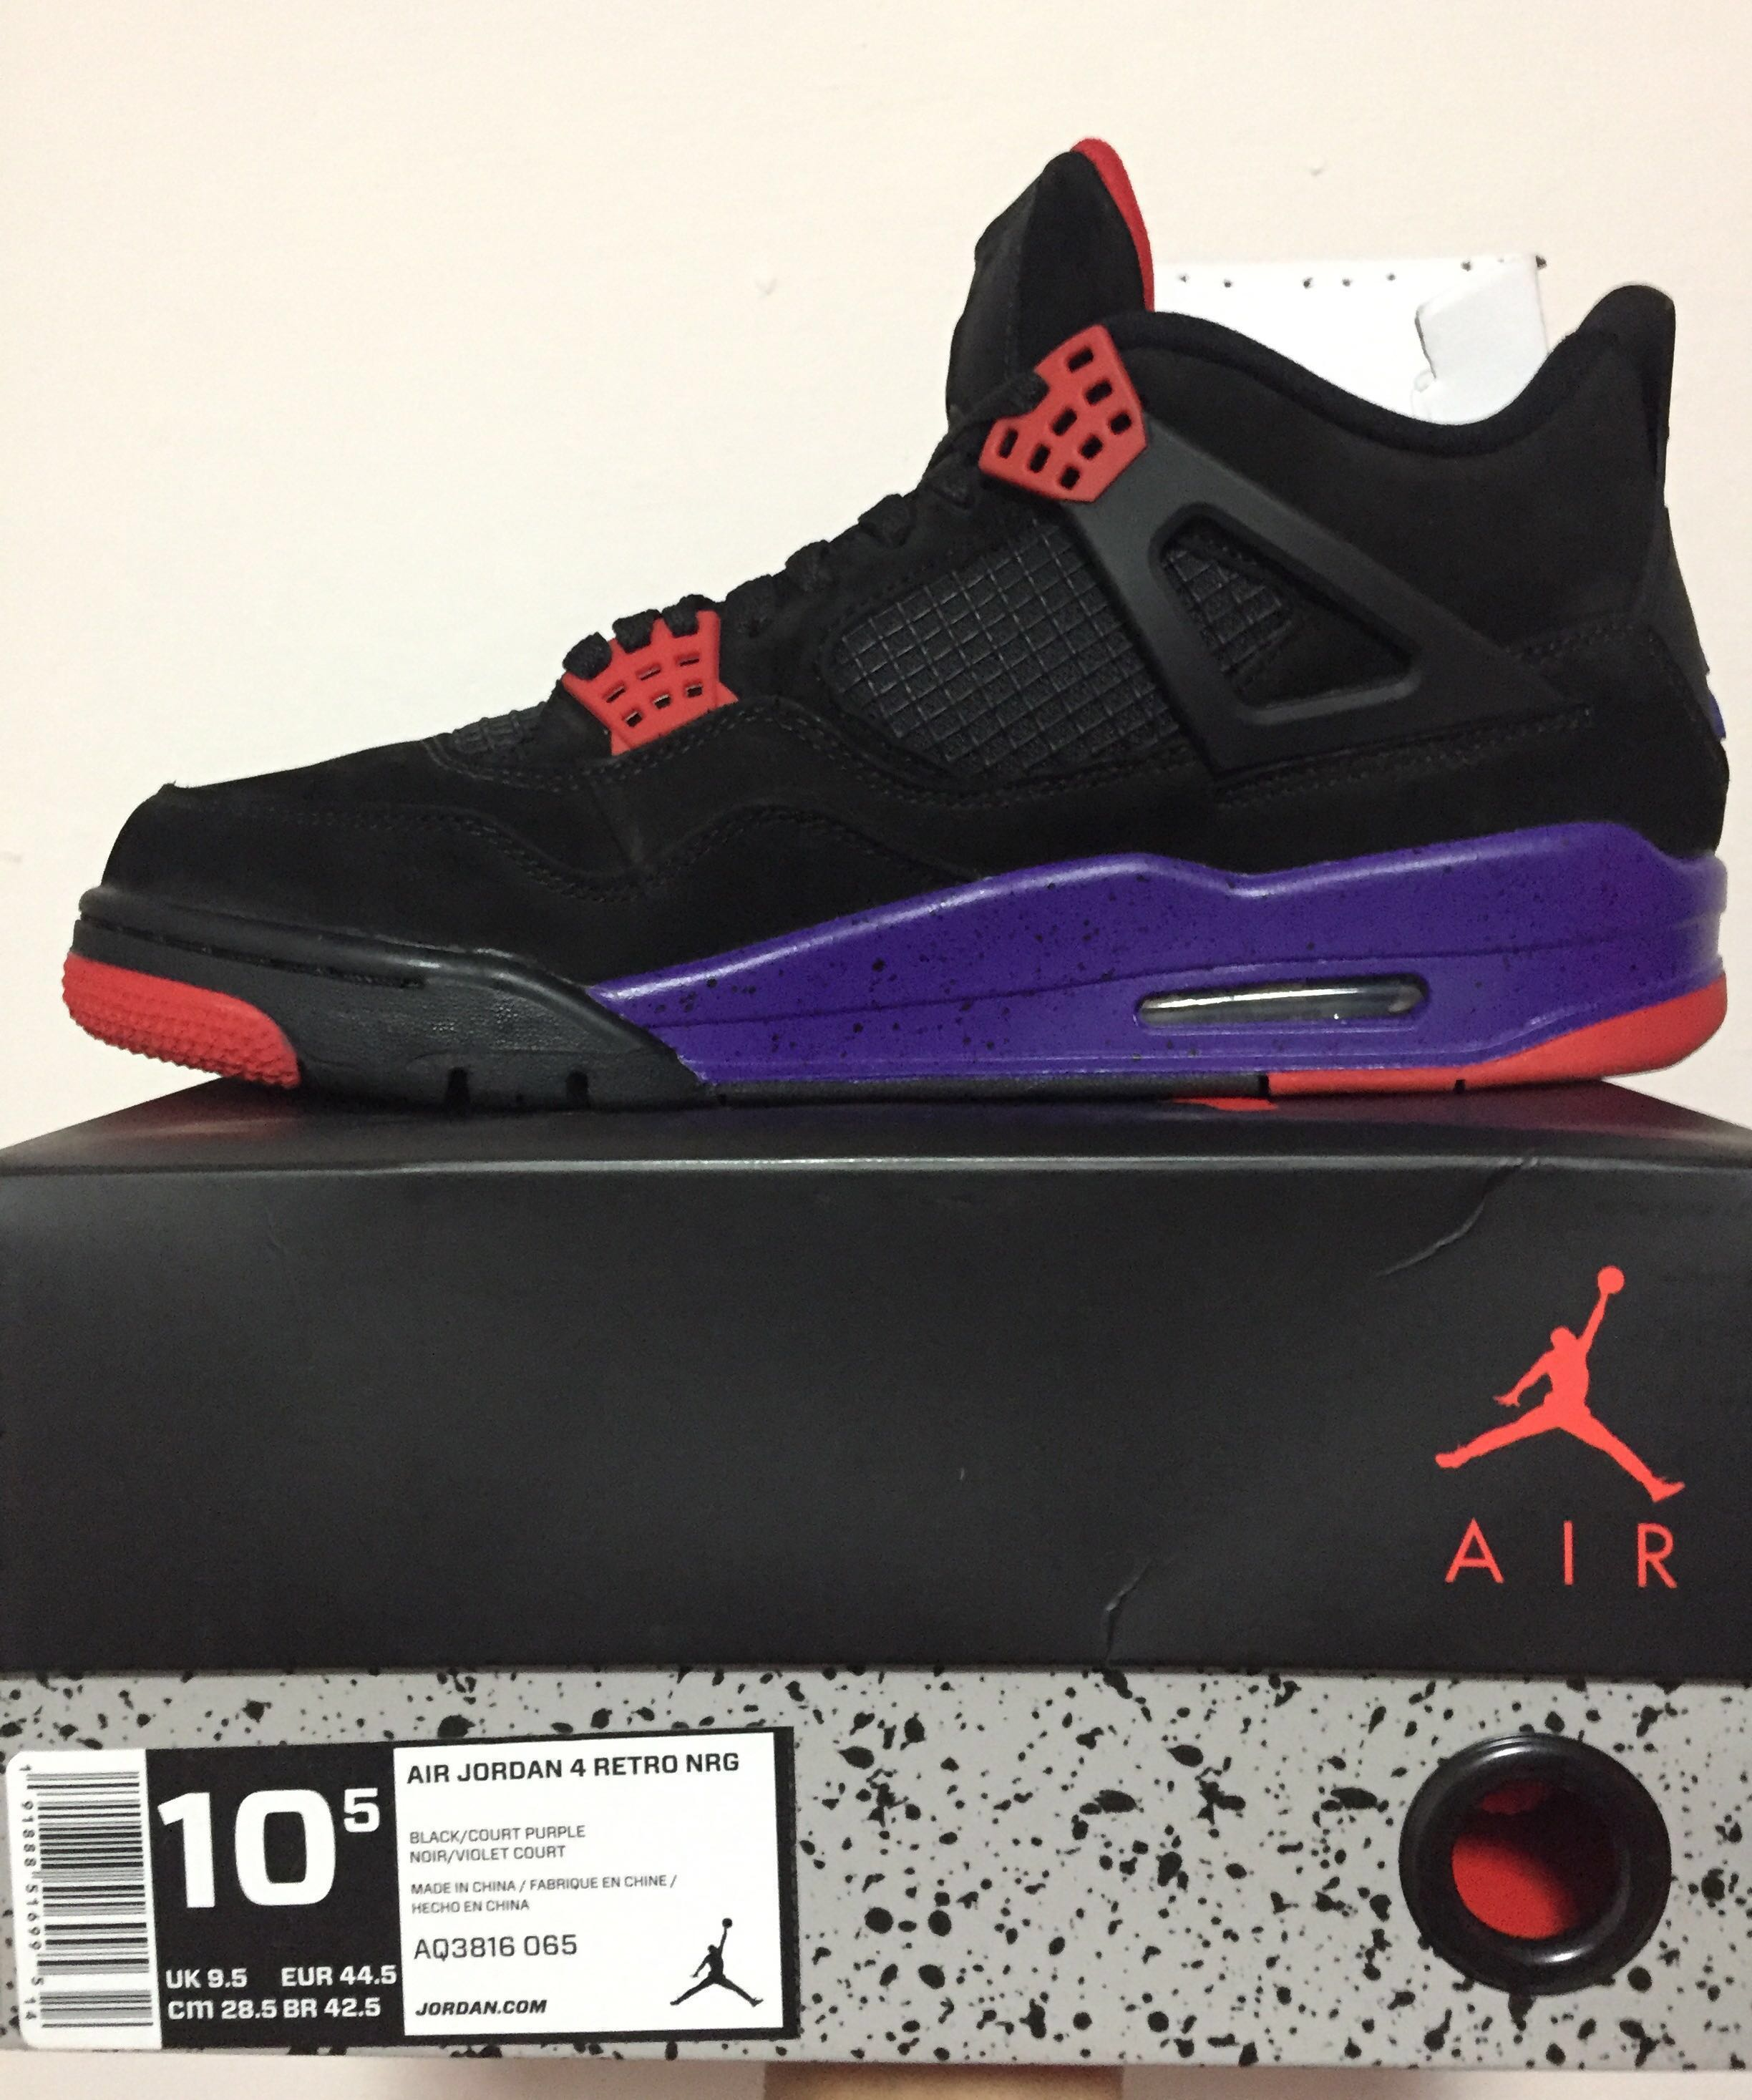 buy online 56d60 9044f BNDS AIR JORDAN 4 RAPTORS, Men s Fashion, Footwear, Sneakers on ...